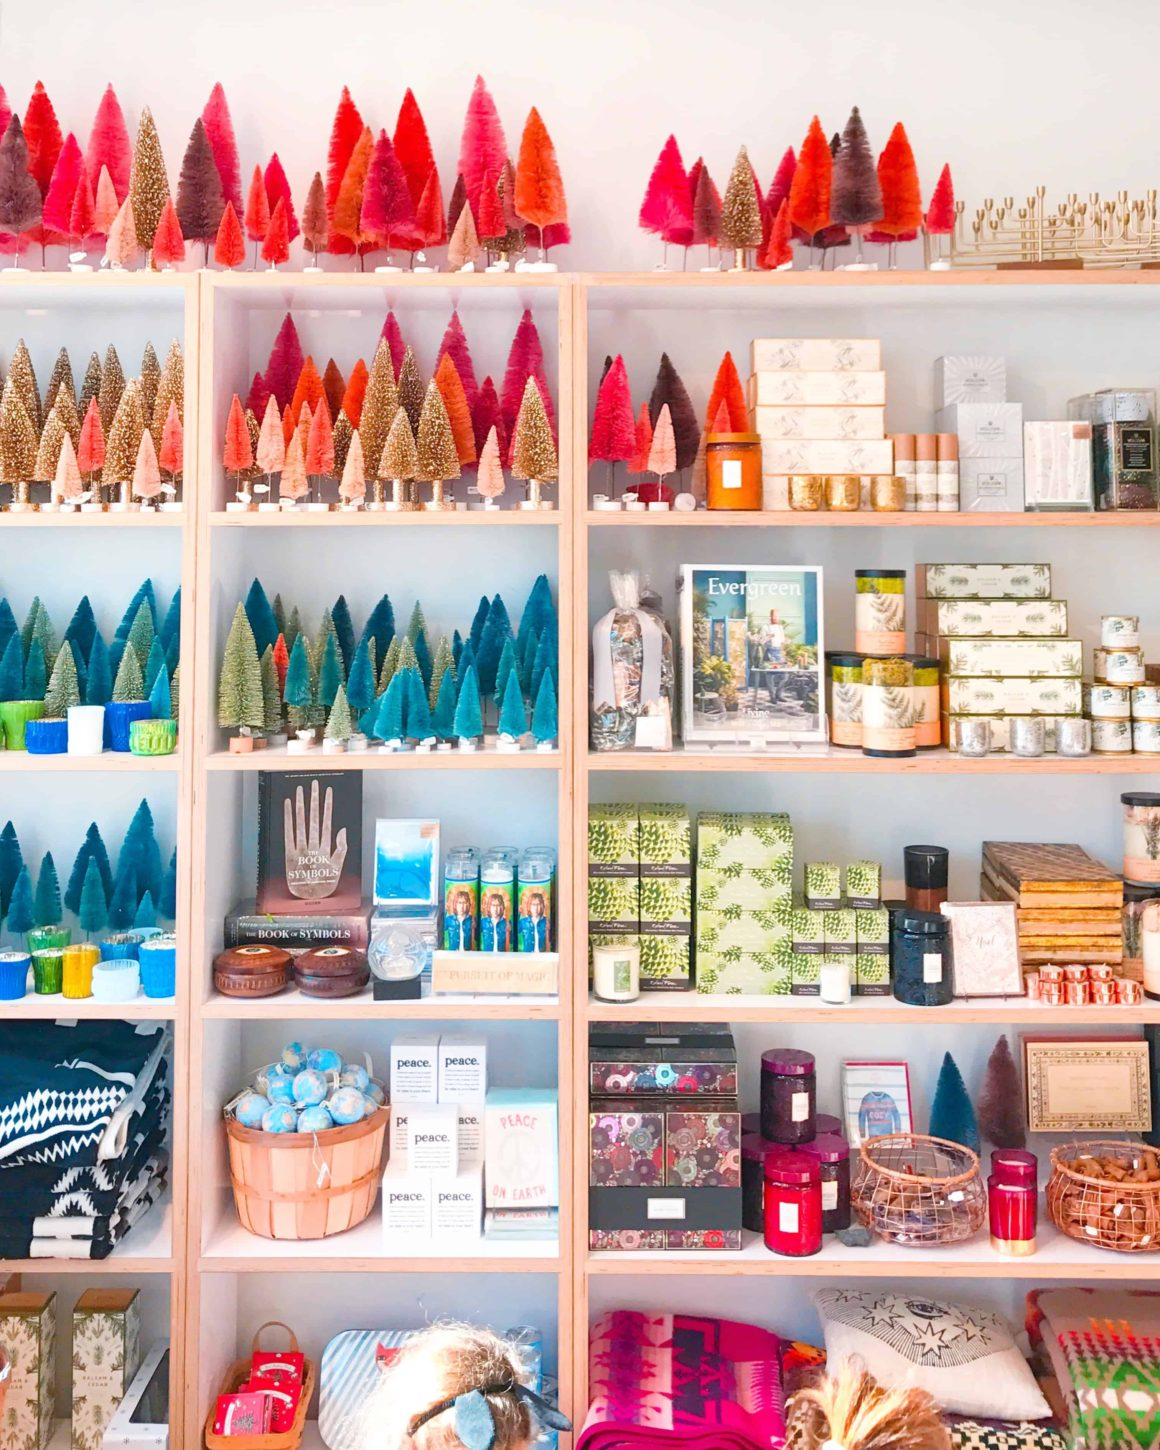 THE BEST INDEPENDENTLY OWNED GIFT SHOPS IN LA